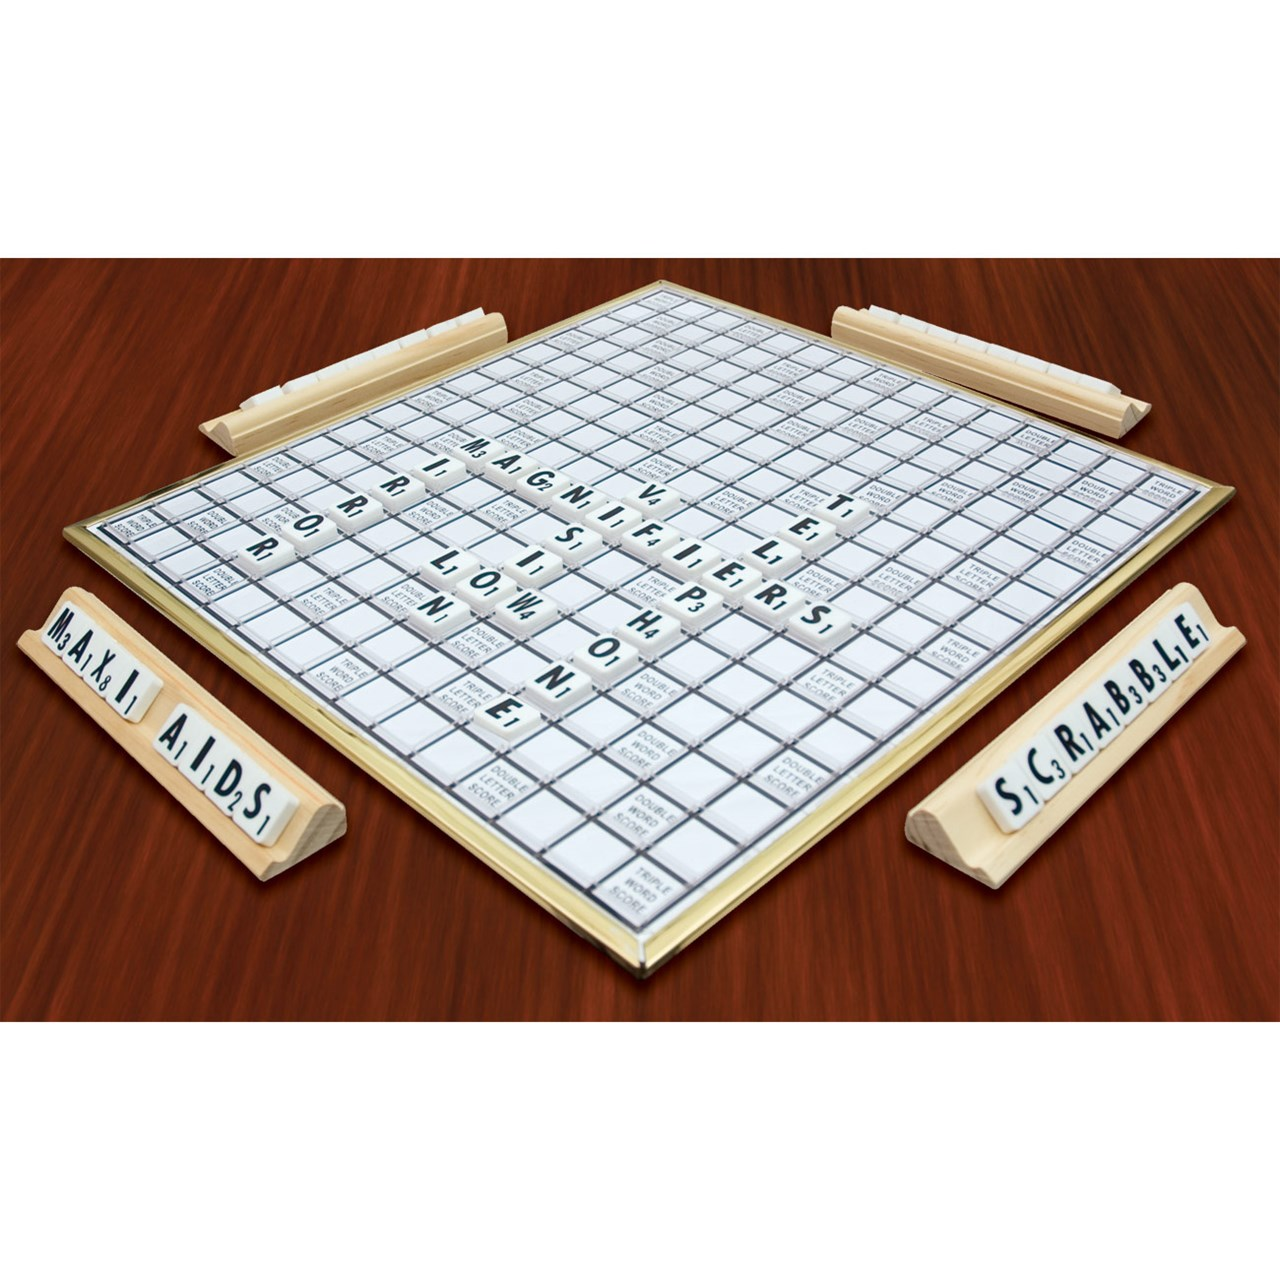 scrabble deluxe for low vision